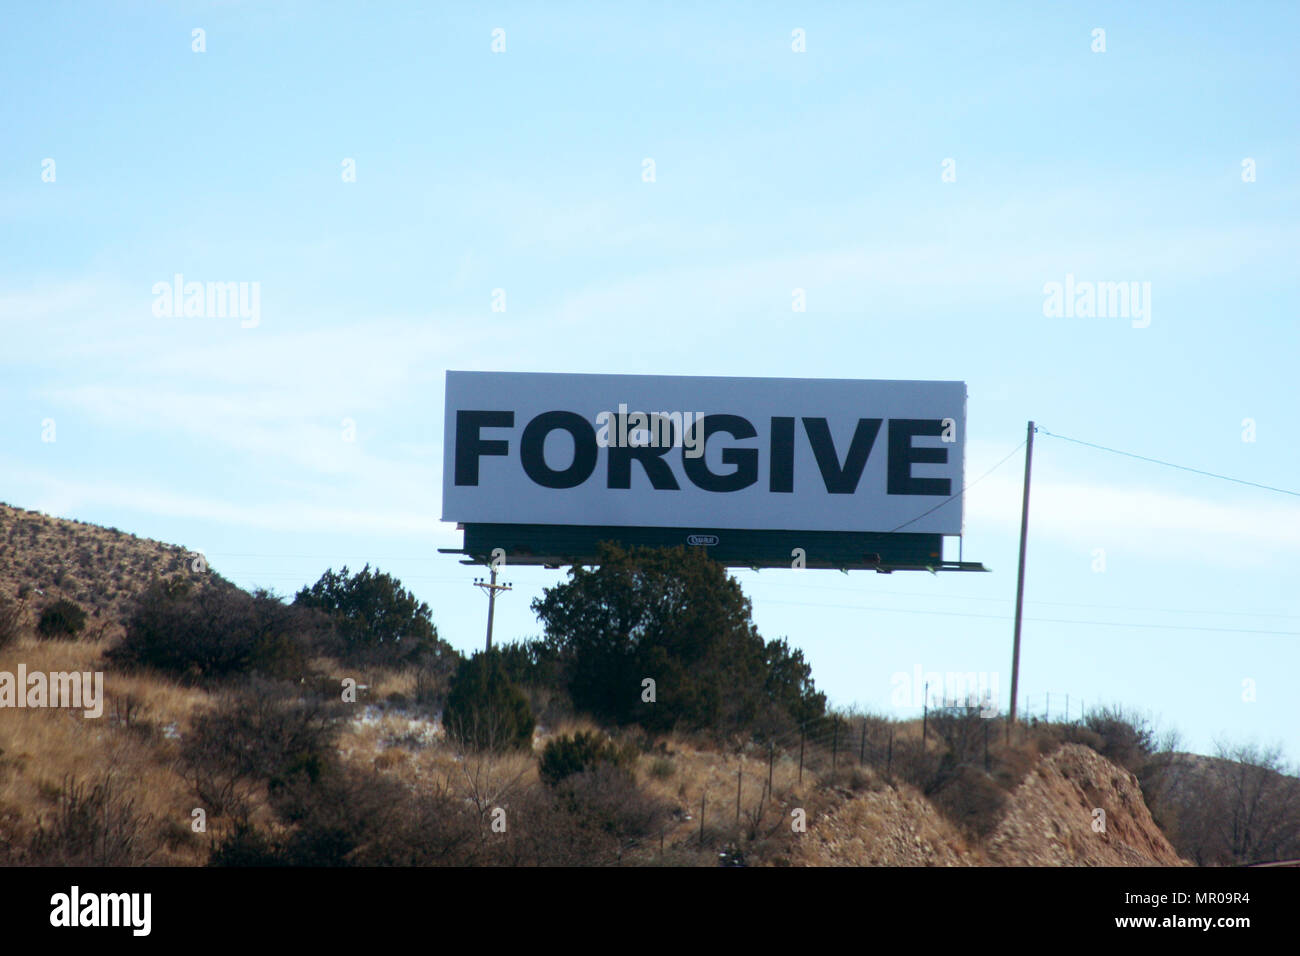 Large banner with the word FORGIVE written on it - Stock Image